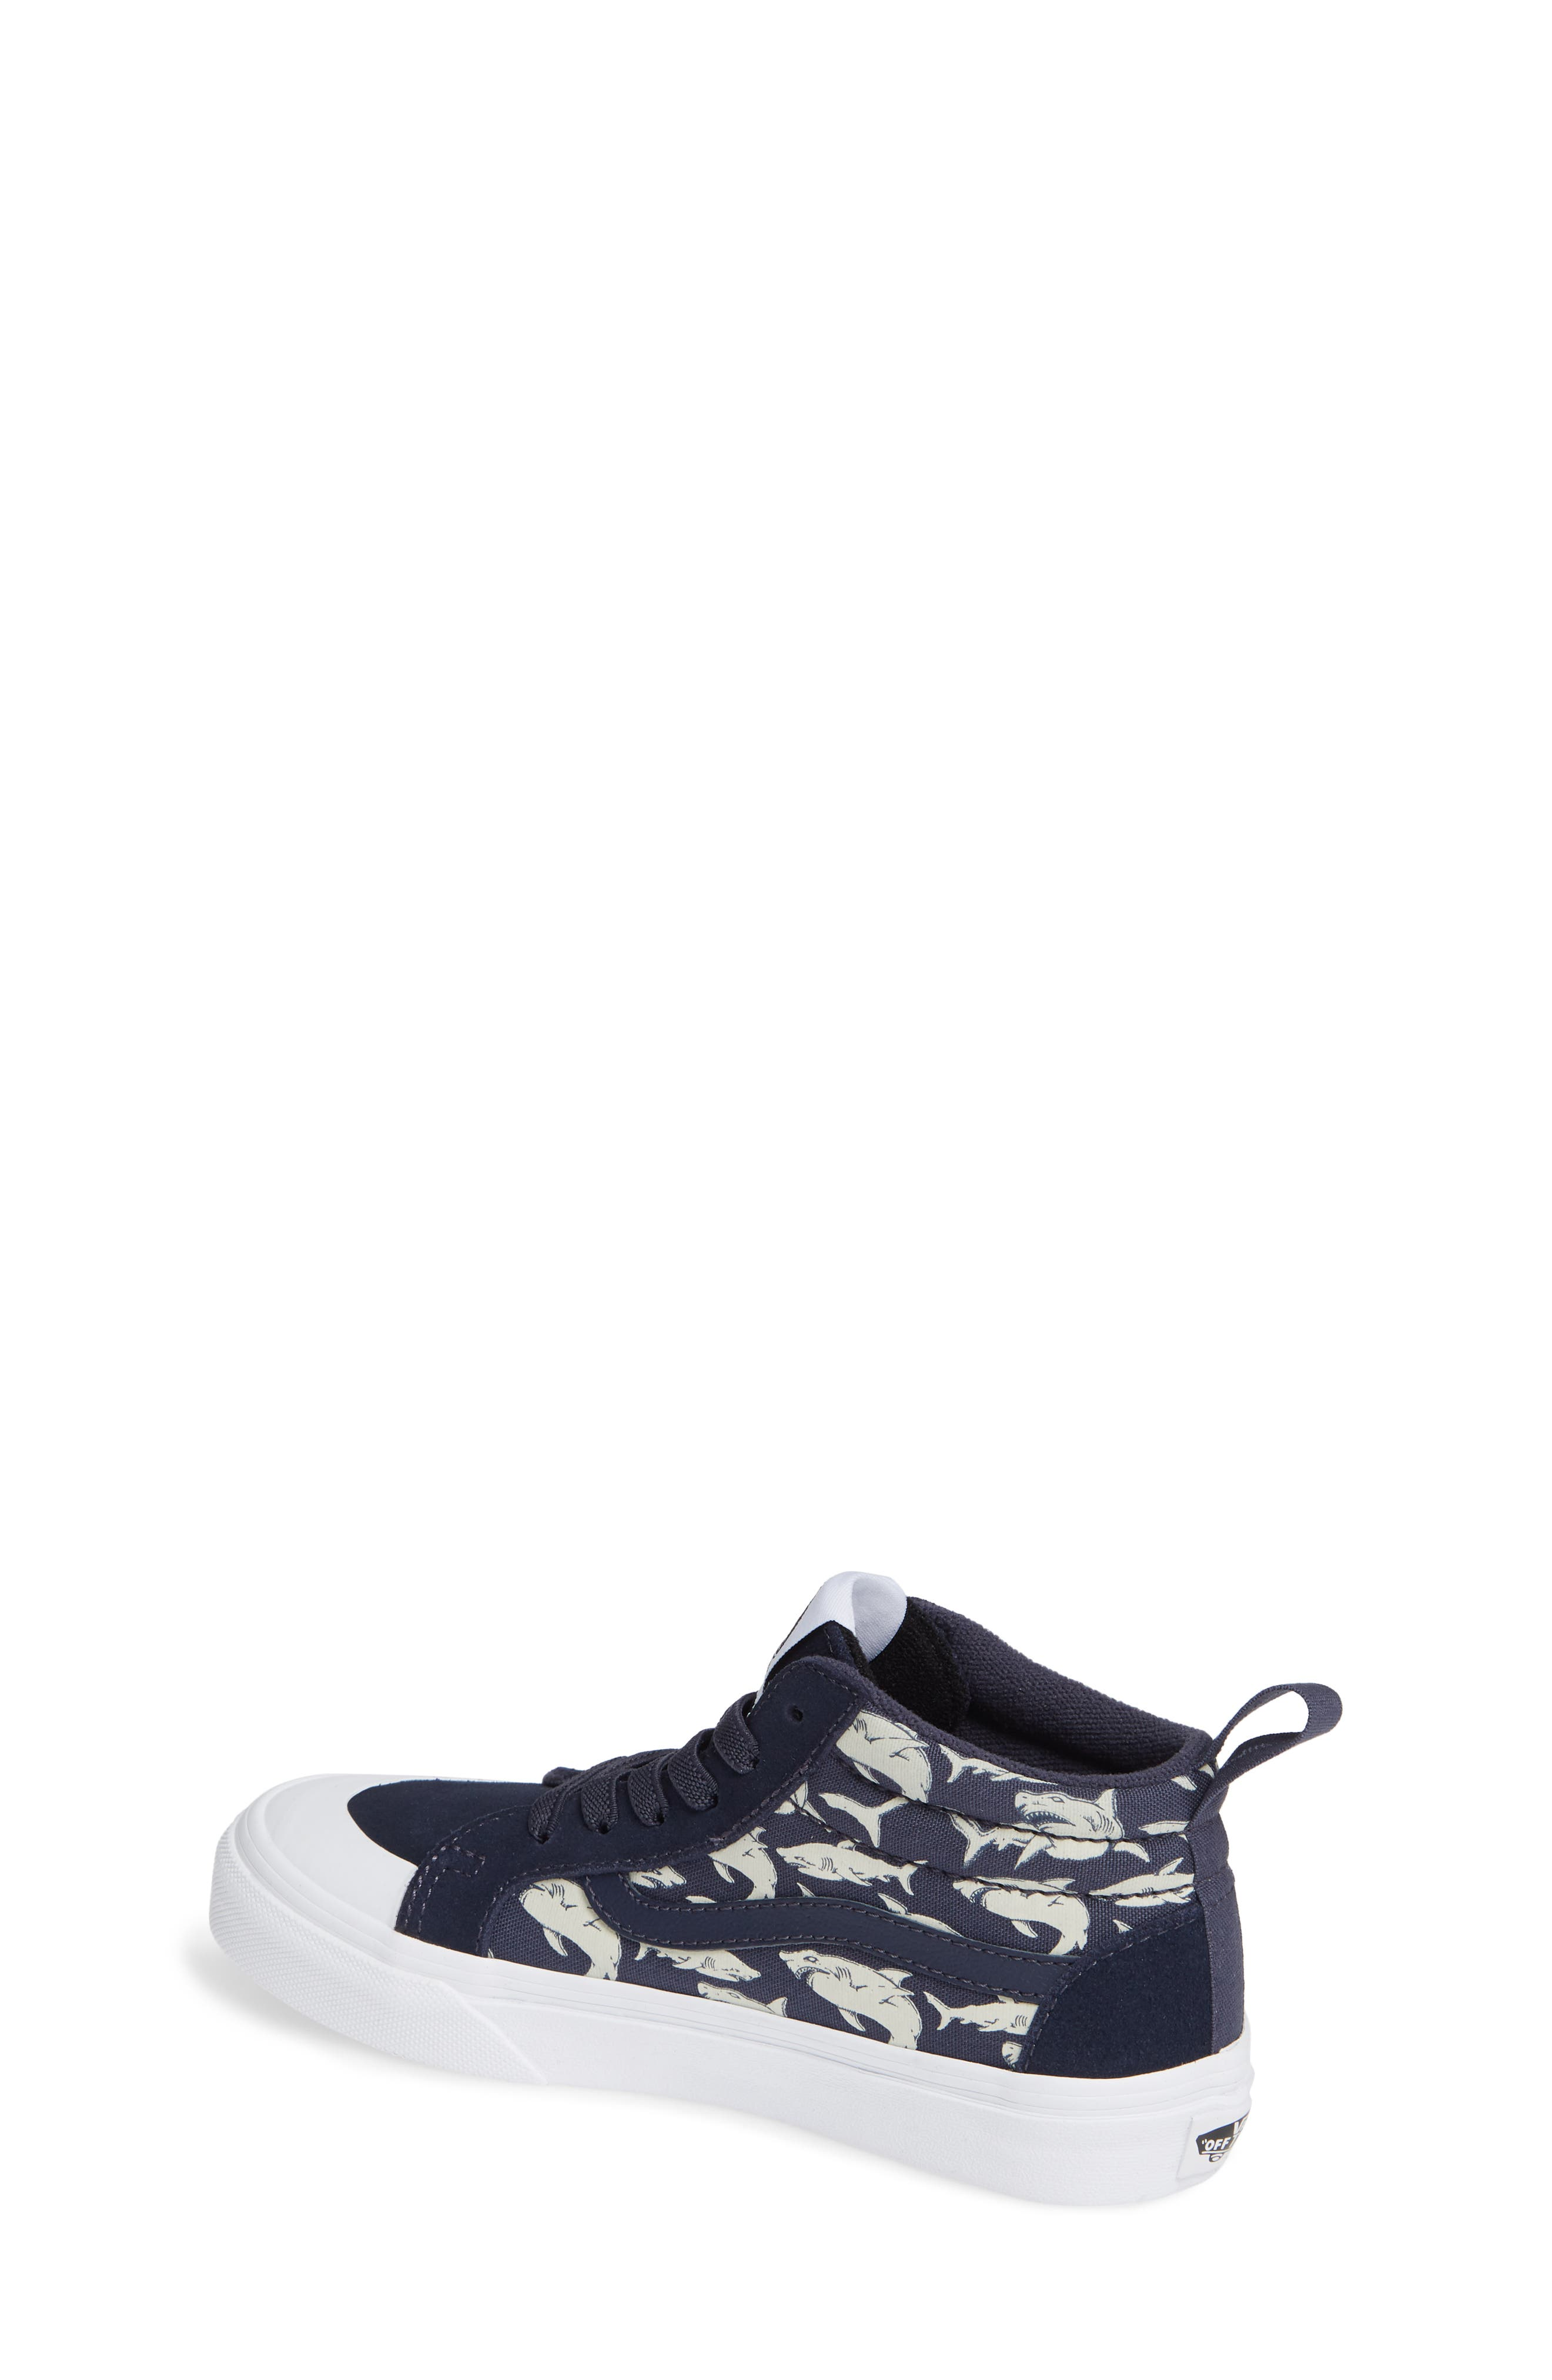 Racer Mid Elastic Lace Sneaker,                             Alternate thumbnail 12, color,